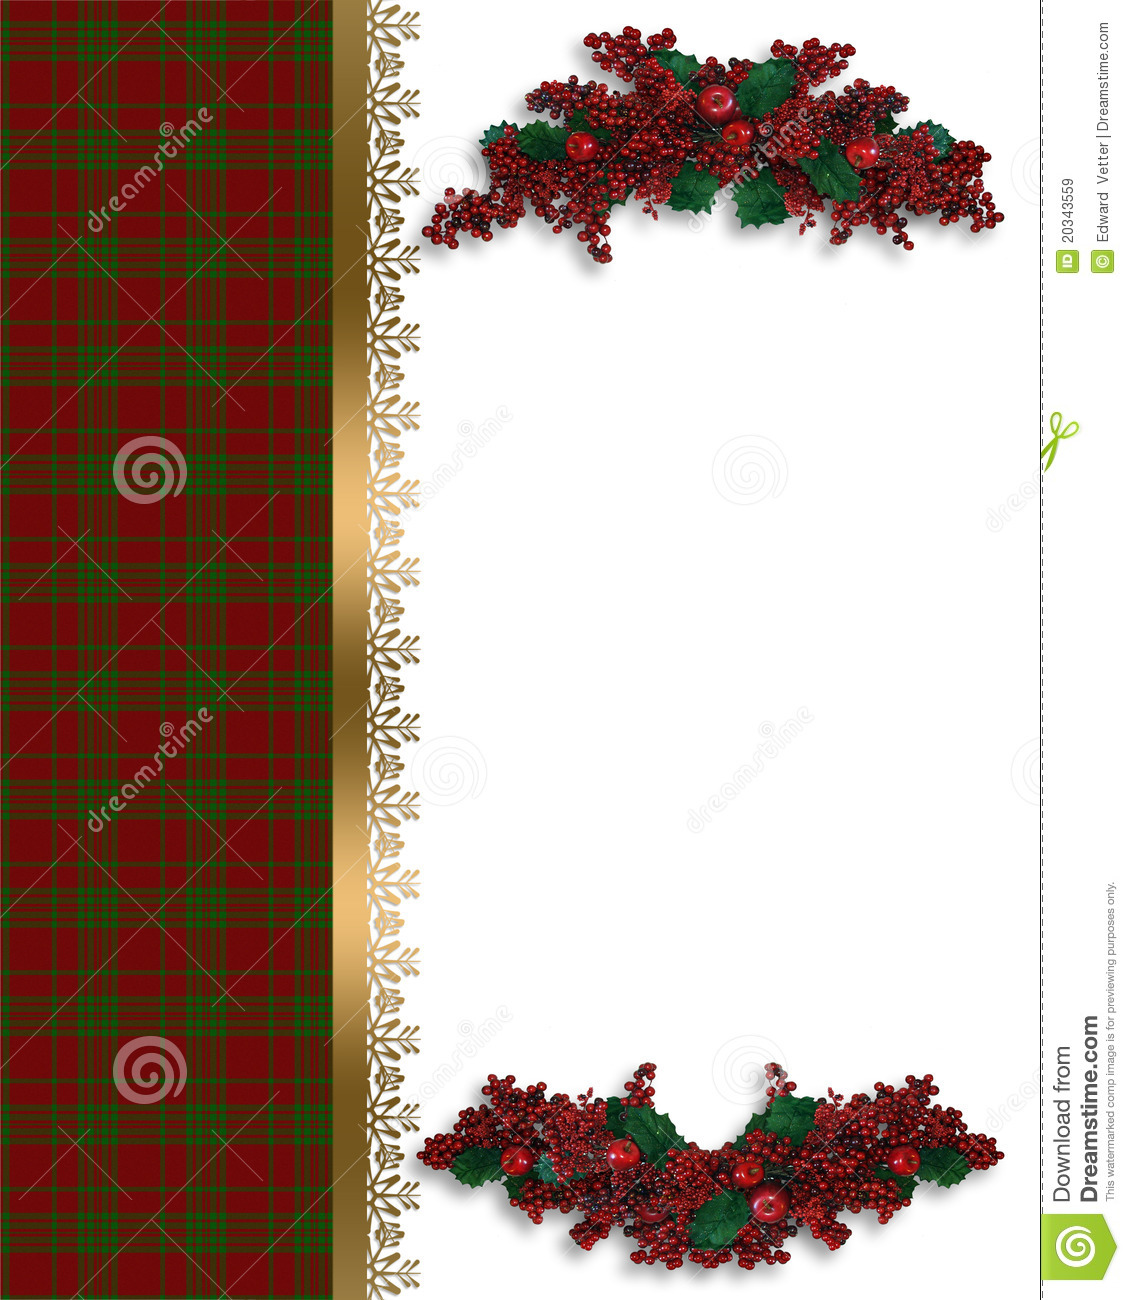 christmas-border-red-plaid-20343559 Xmas Letter Template on sample request, basic cover, sample business,